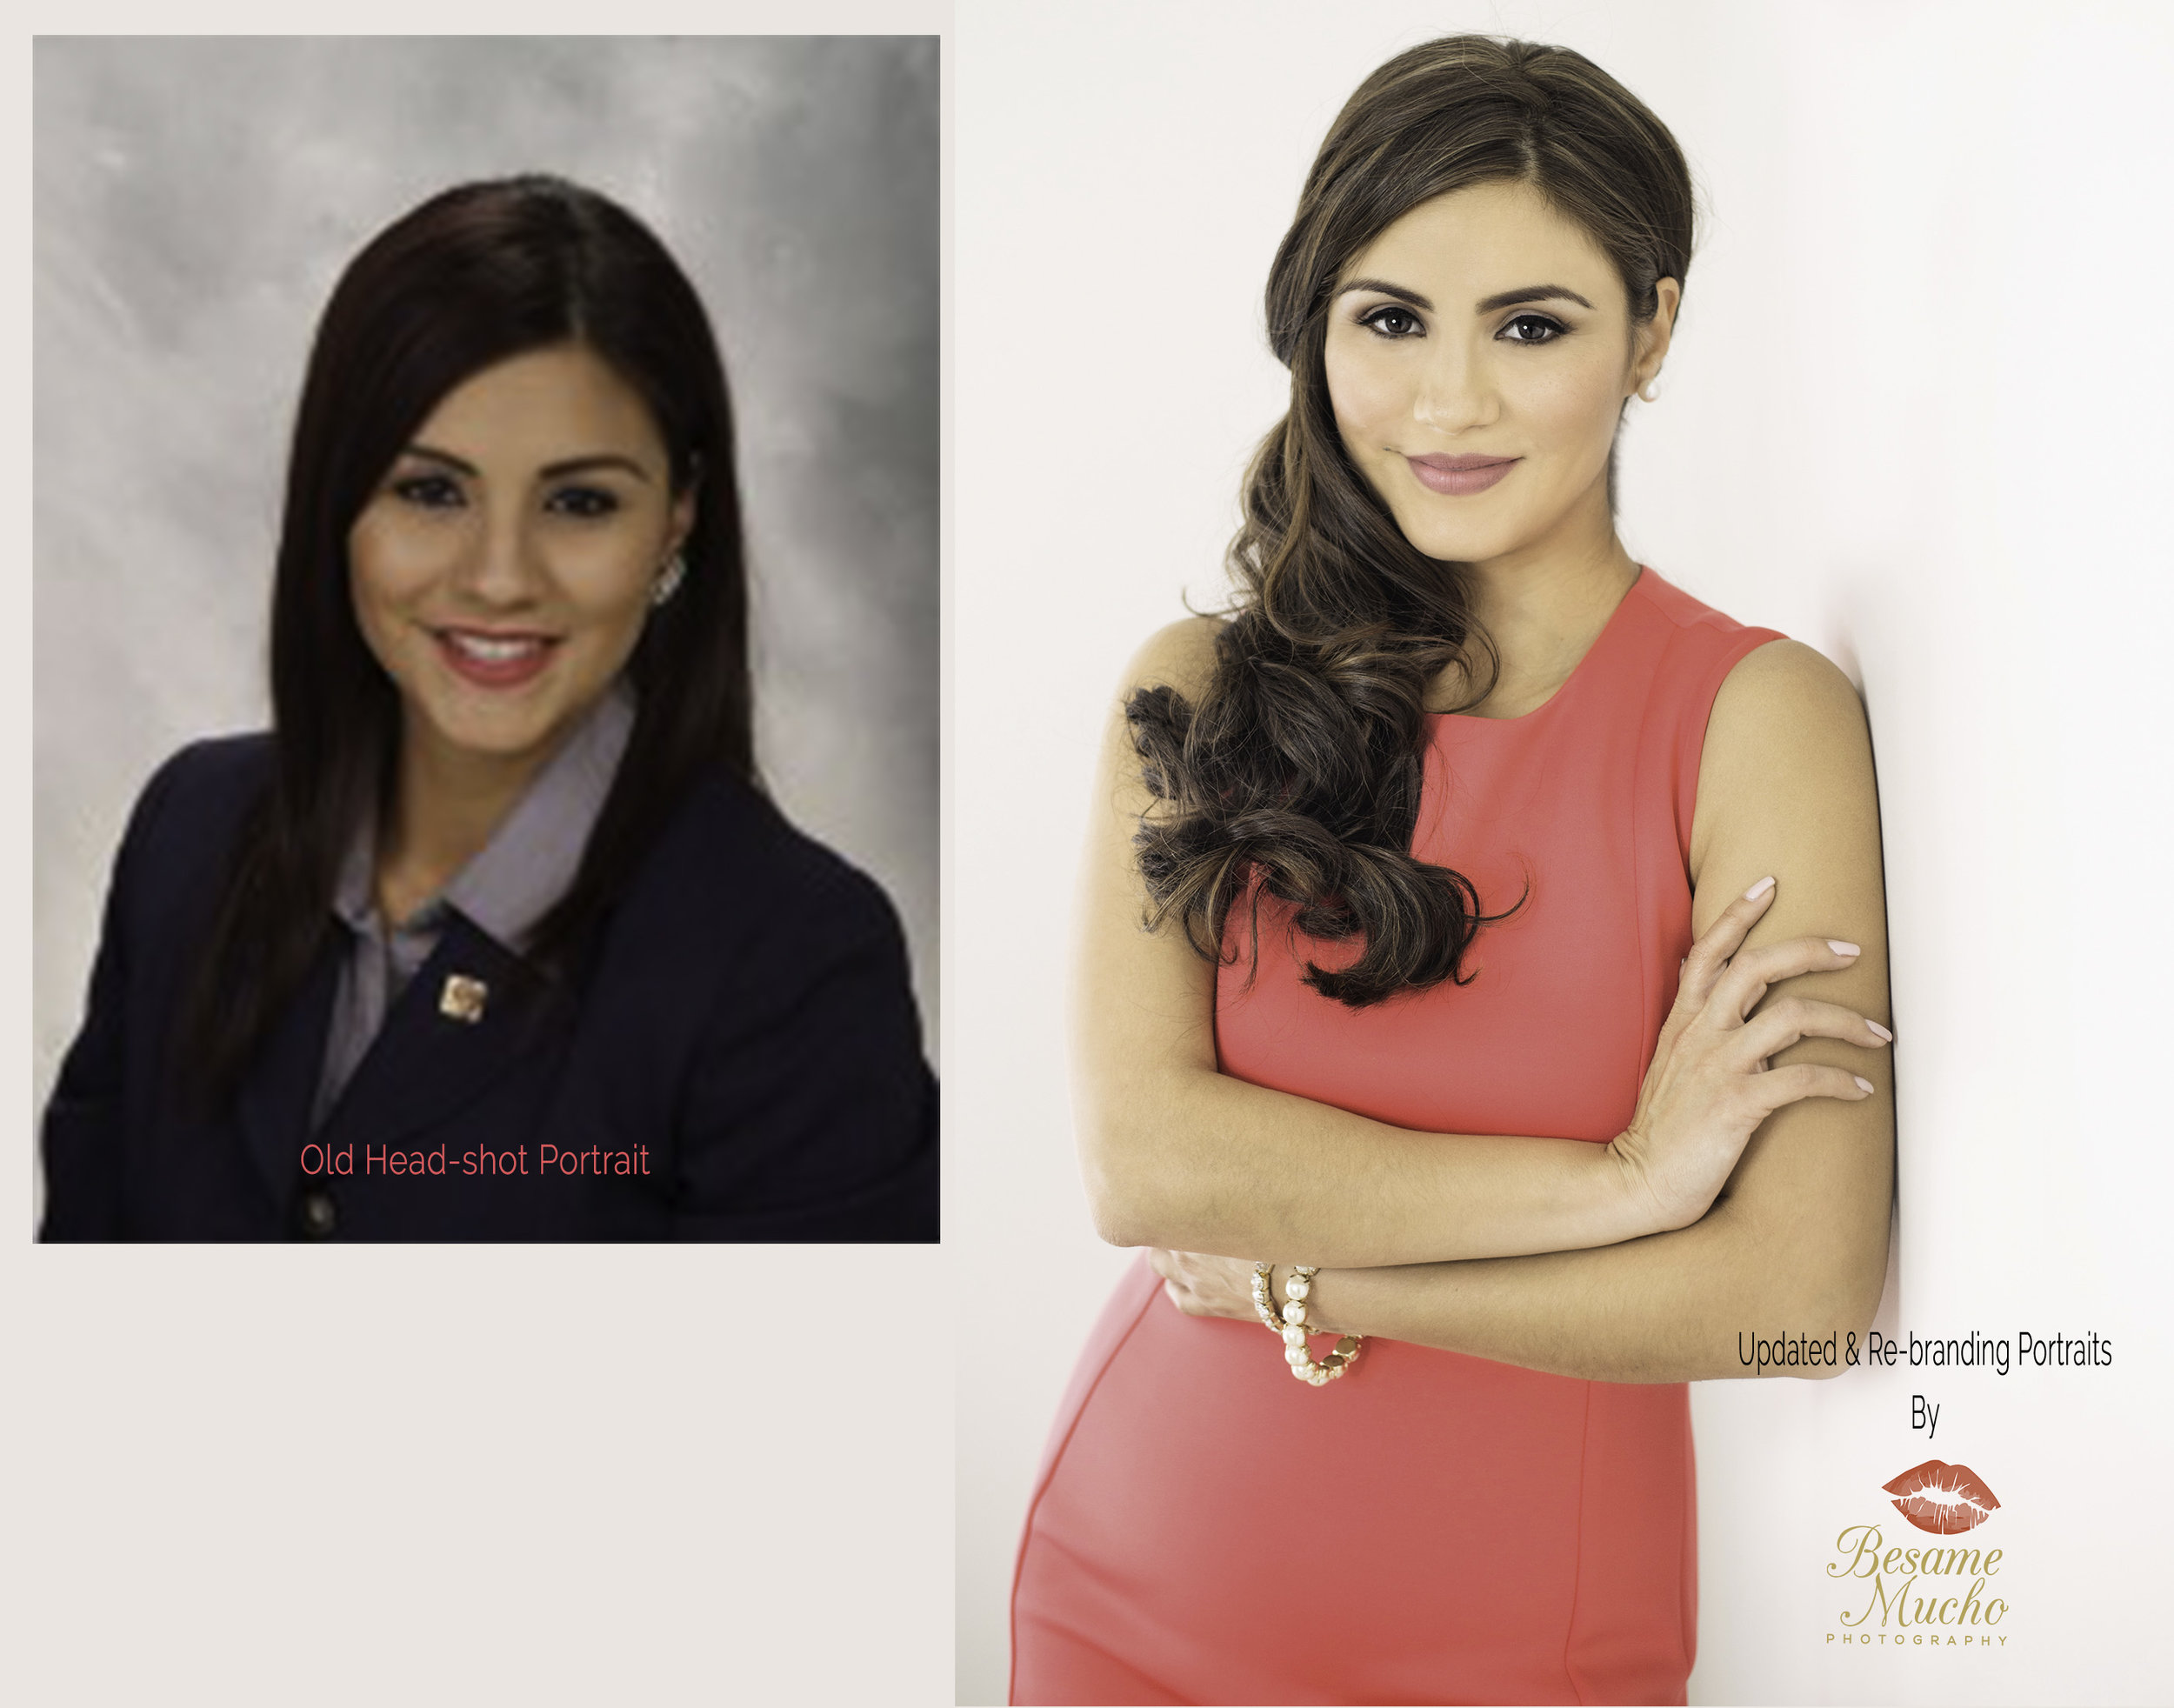 Picture on the Right (pink dress) by Carla Perez at Besame Mucho Photography